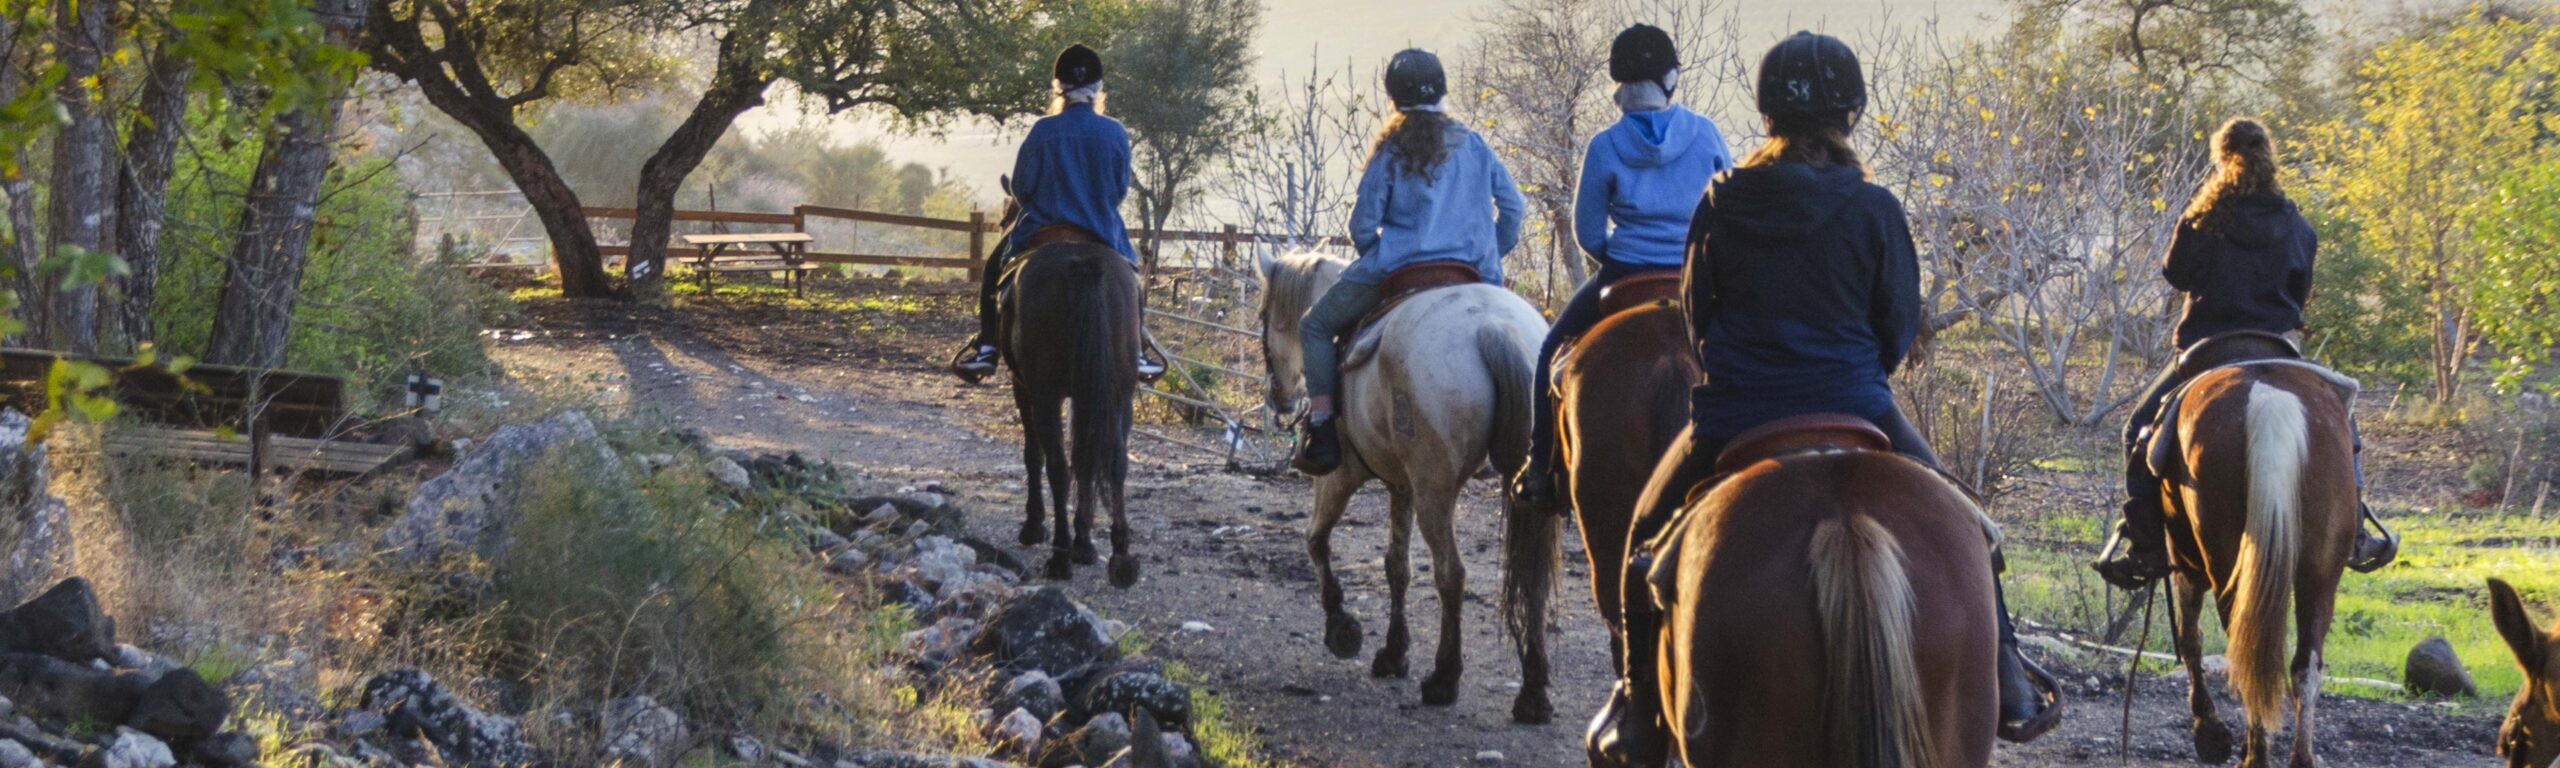 Riders on a horse trail.